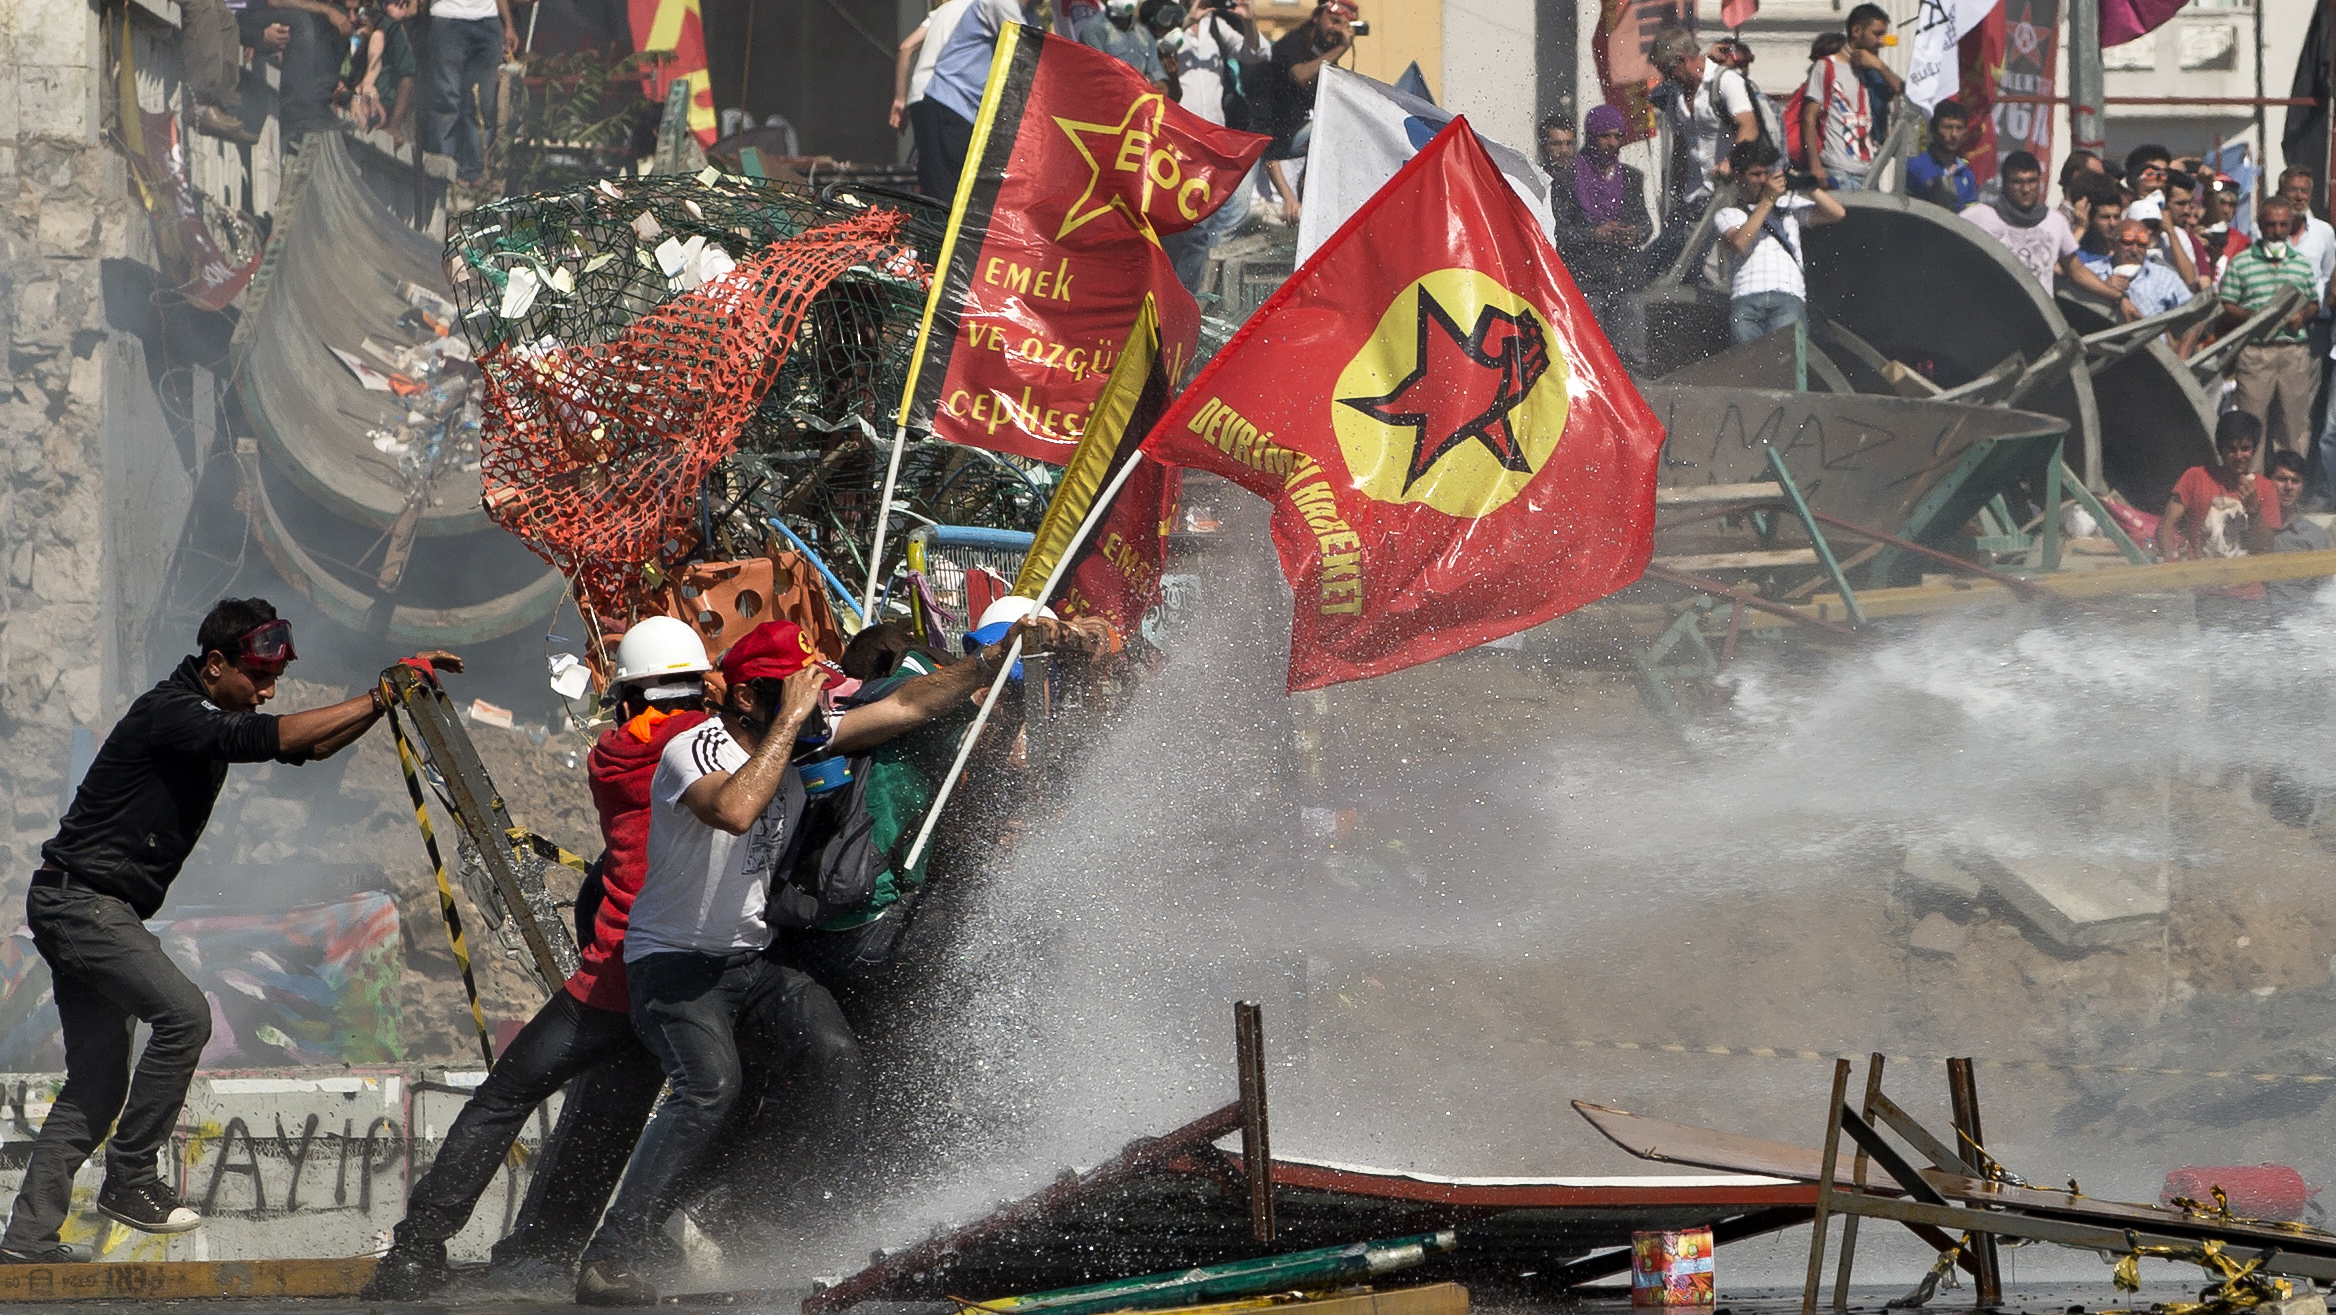 Protesters take cover as a police vehicle fires water canon during clashes at the Taksim Square in Istanbul Tuesday, June 11, 2013. Hundreds of police in riot gear forced their way through barricades in the square early Tuesday, pushing many of the protesters who had occupied the square for more than a week into a nearby park. (AP Photo/Vadim Ghirda)